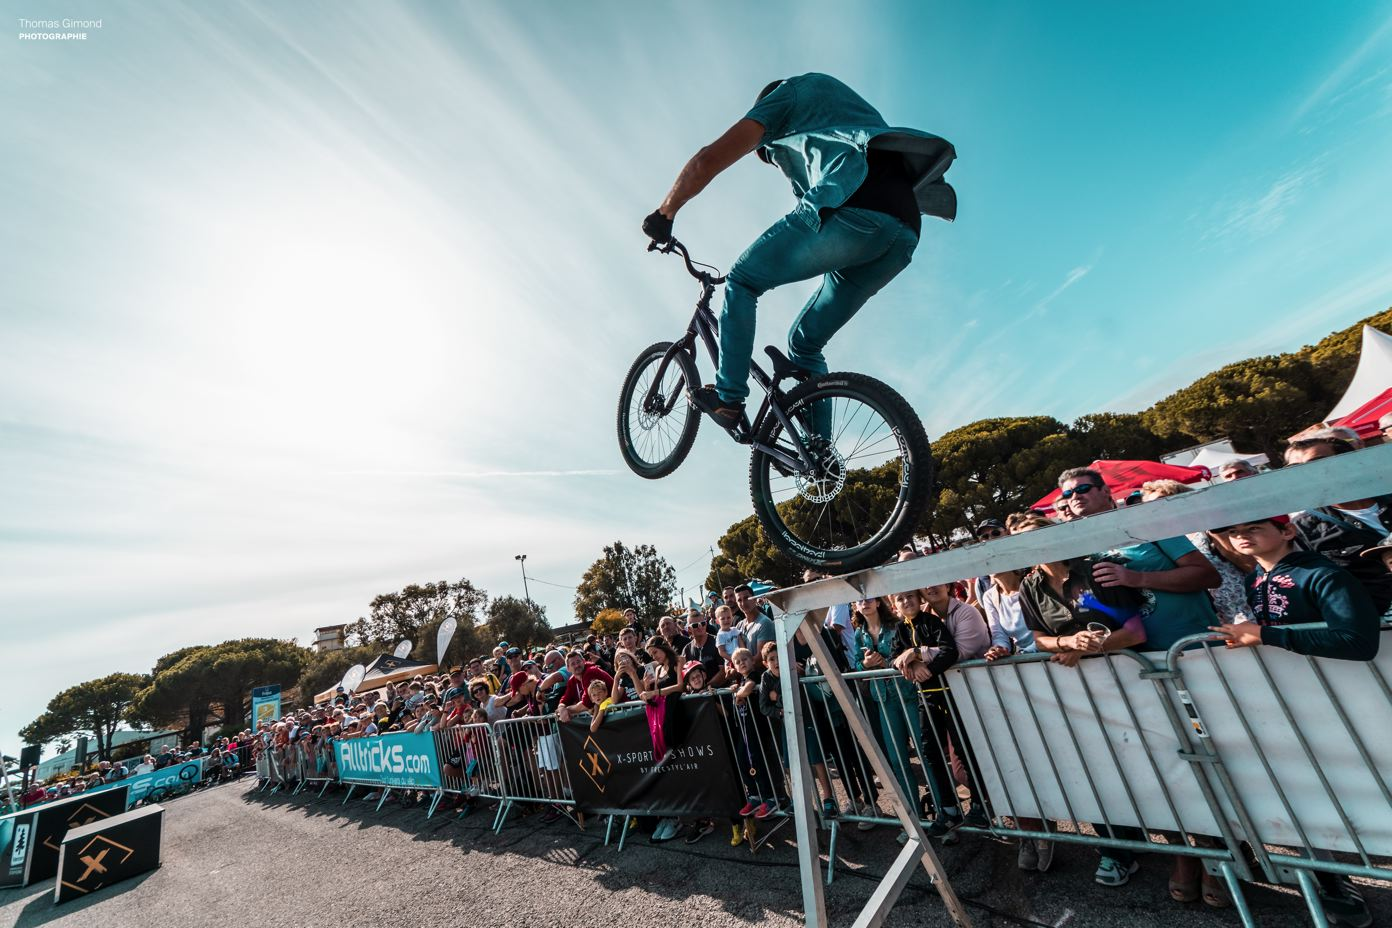 the most beautiful photos of the freestyle mtb show on the Roc d'Azur 2019